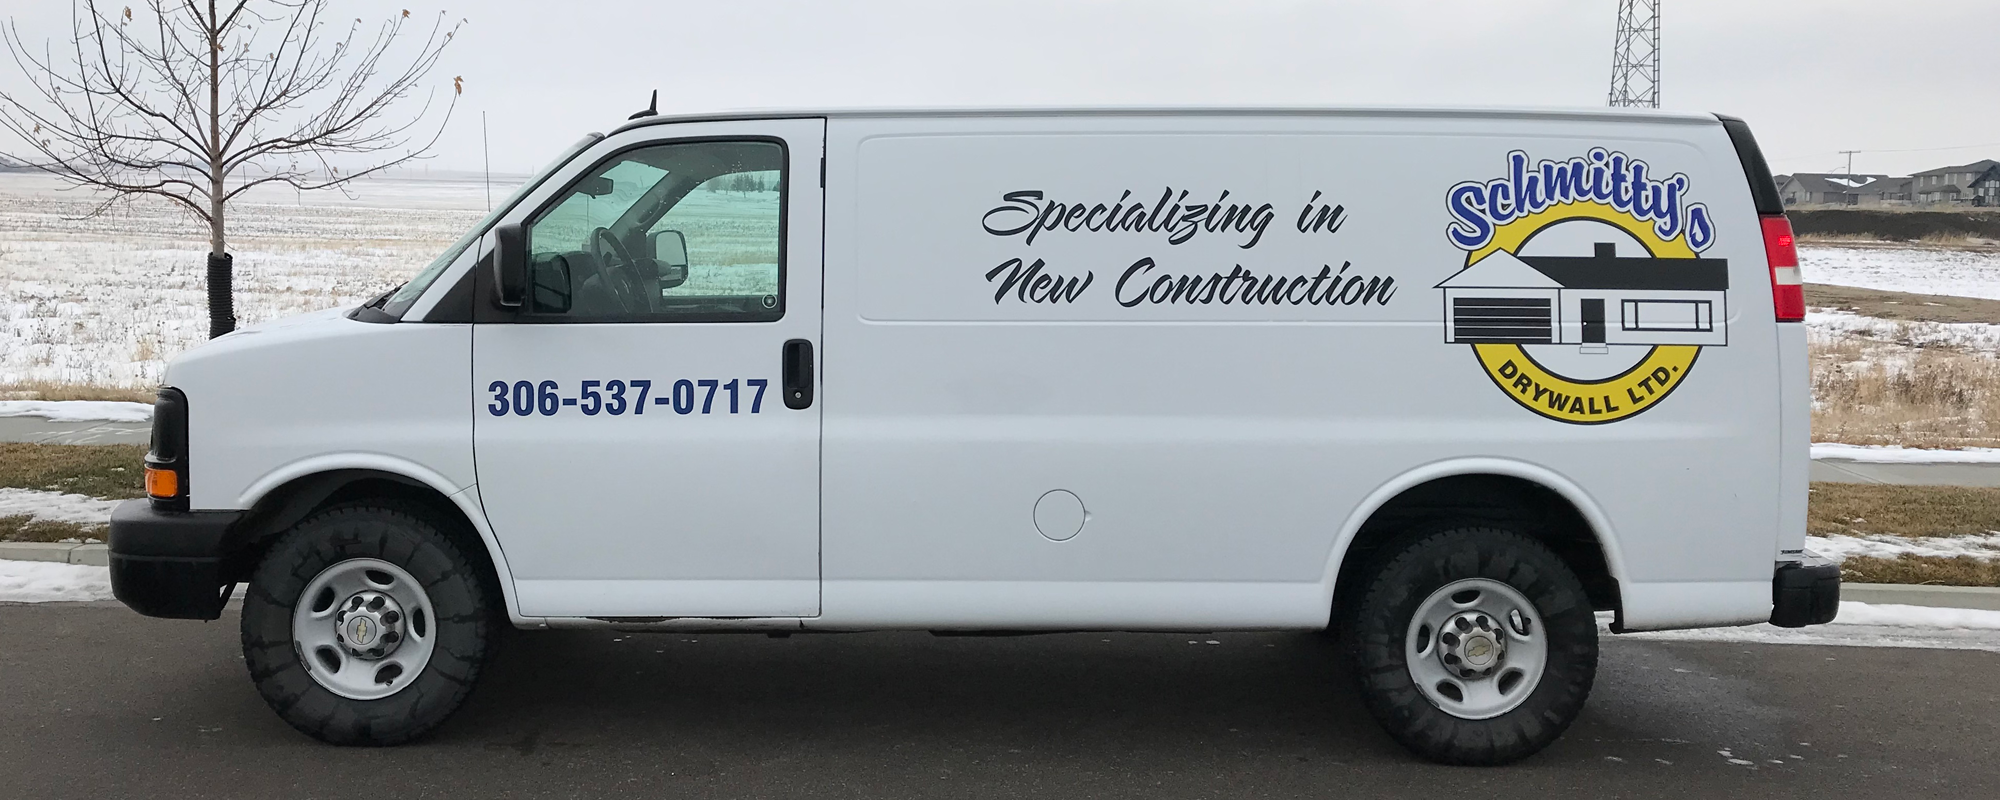 Schmitty's Drywall Ltd Van